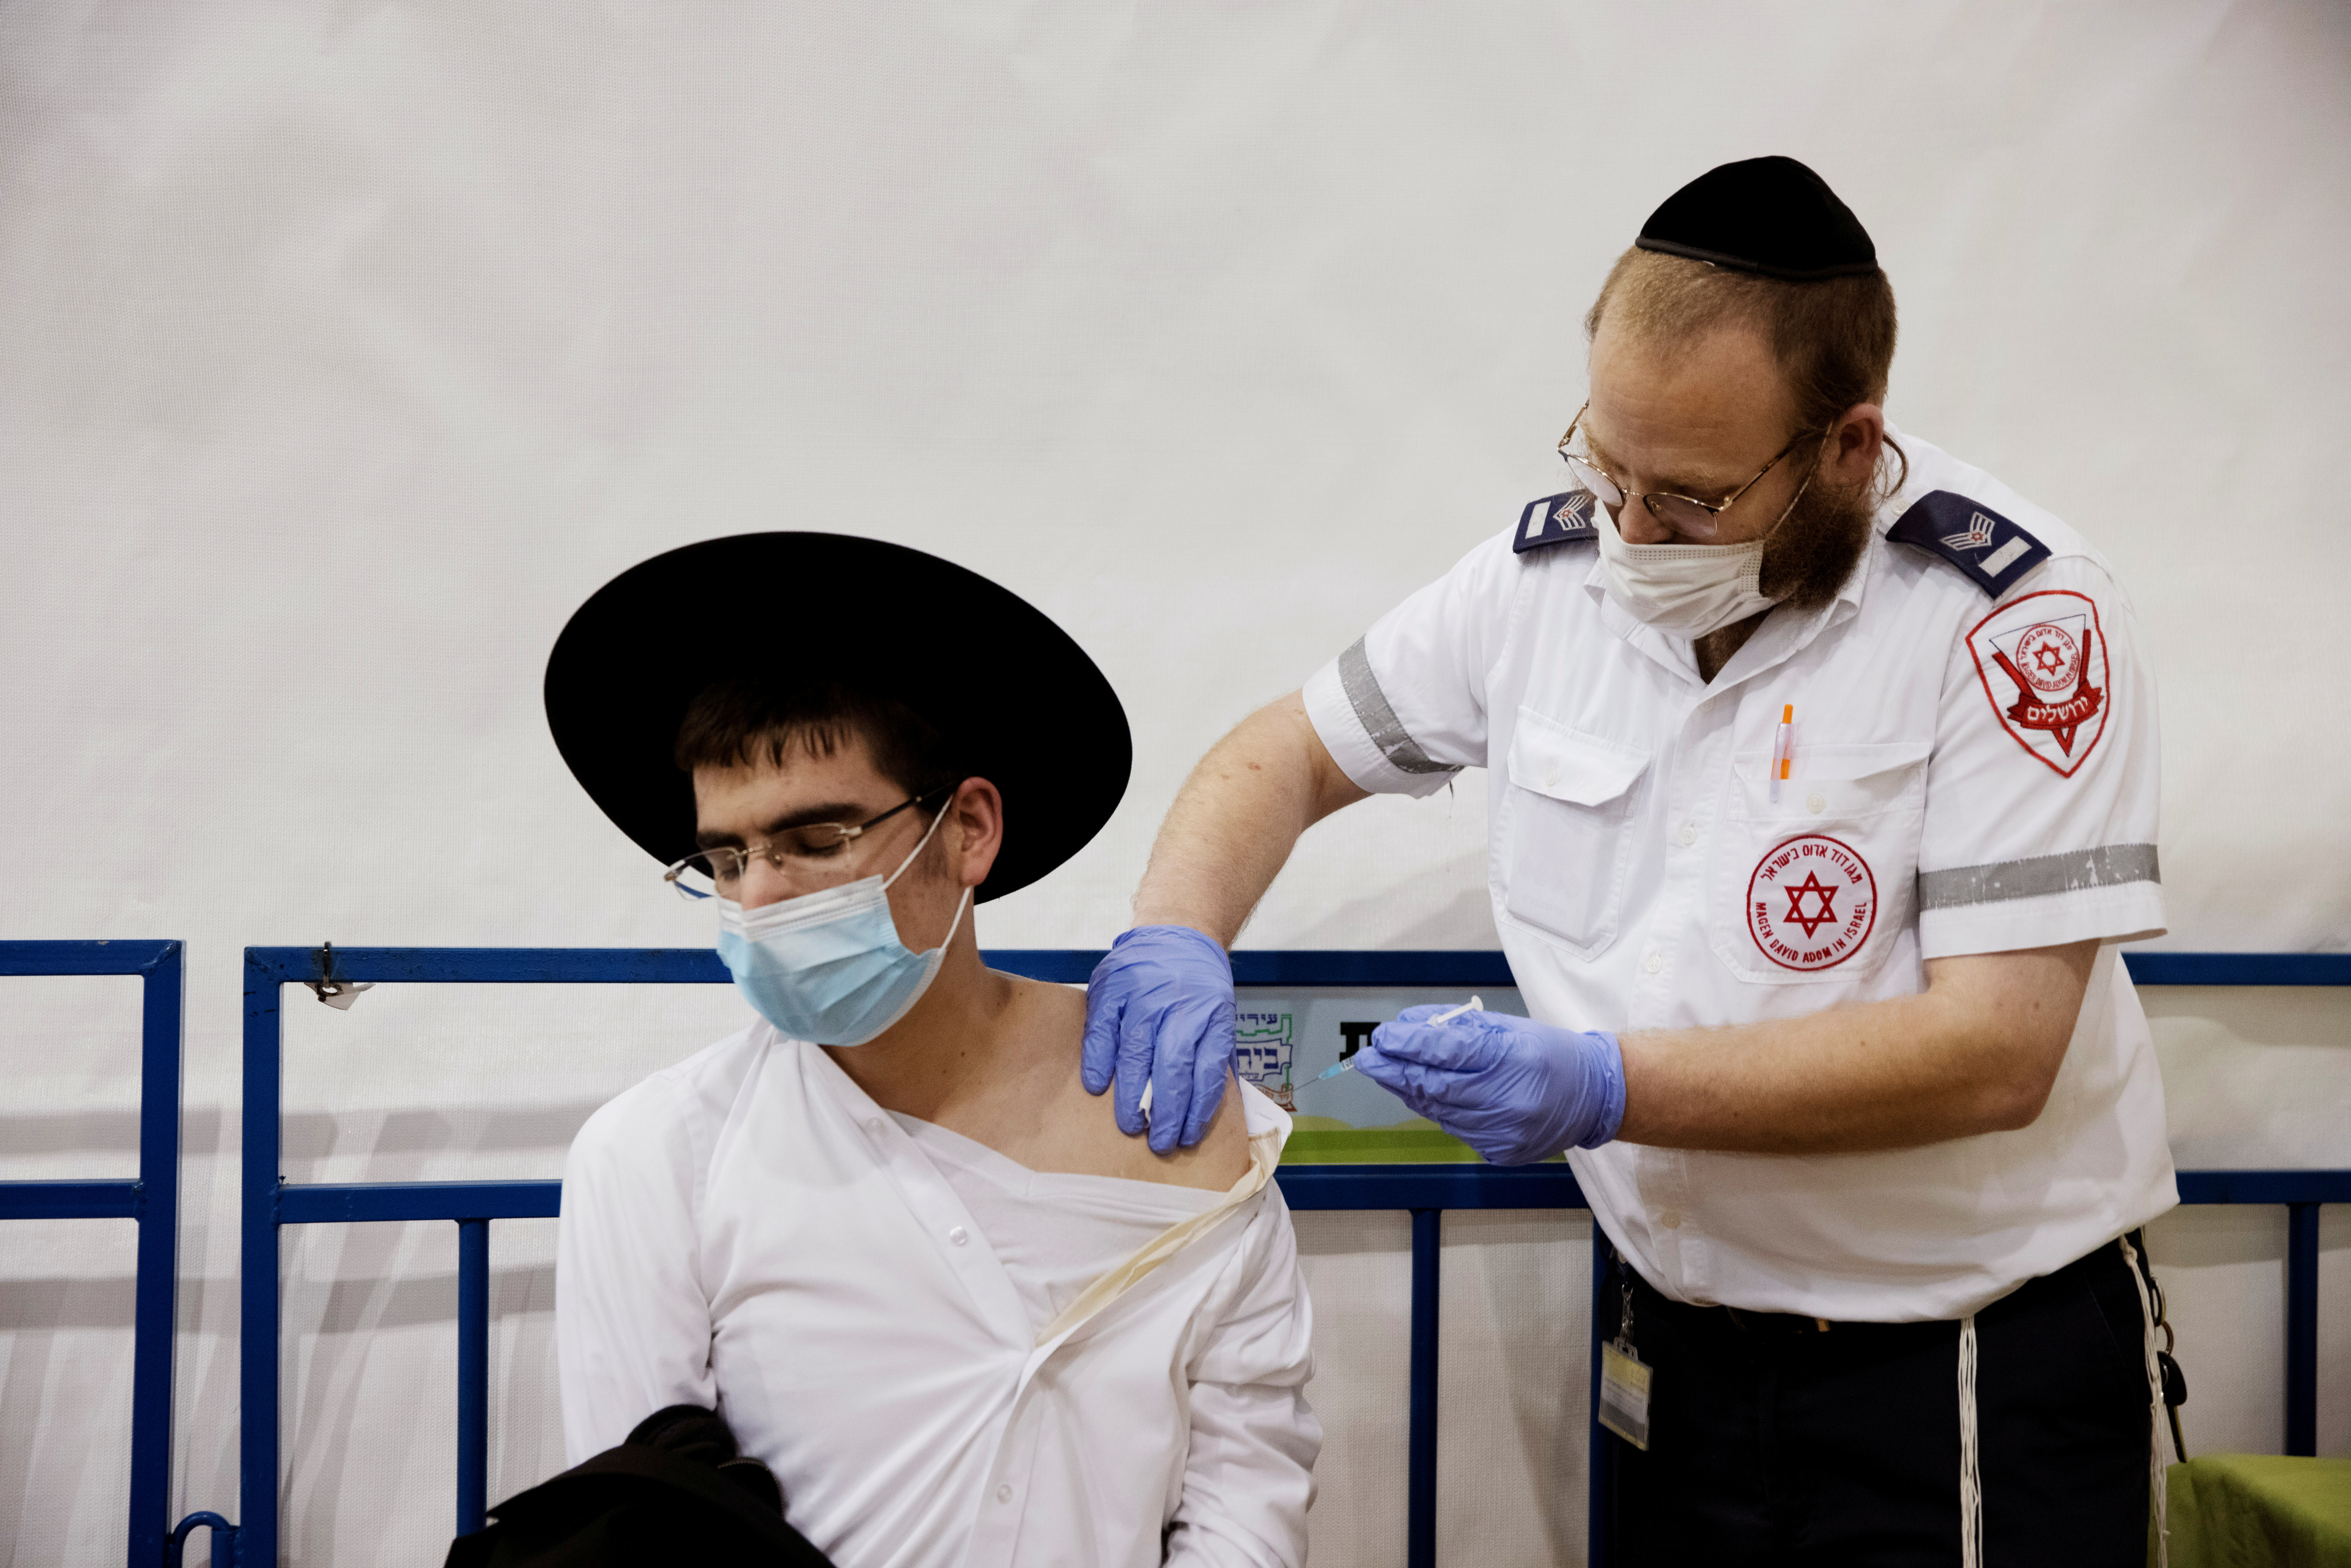 An ultra-Orthodox Jewish man receives a vaccination against the coronavirus disease (COVID-19) at a temporary vaccination centre in the Jewish settlement of Beitar Illit, in the Israeli-occupied West Bank February 16, 2021. REUTERS/Ronen Zvulun